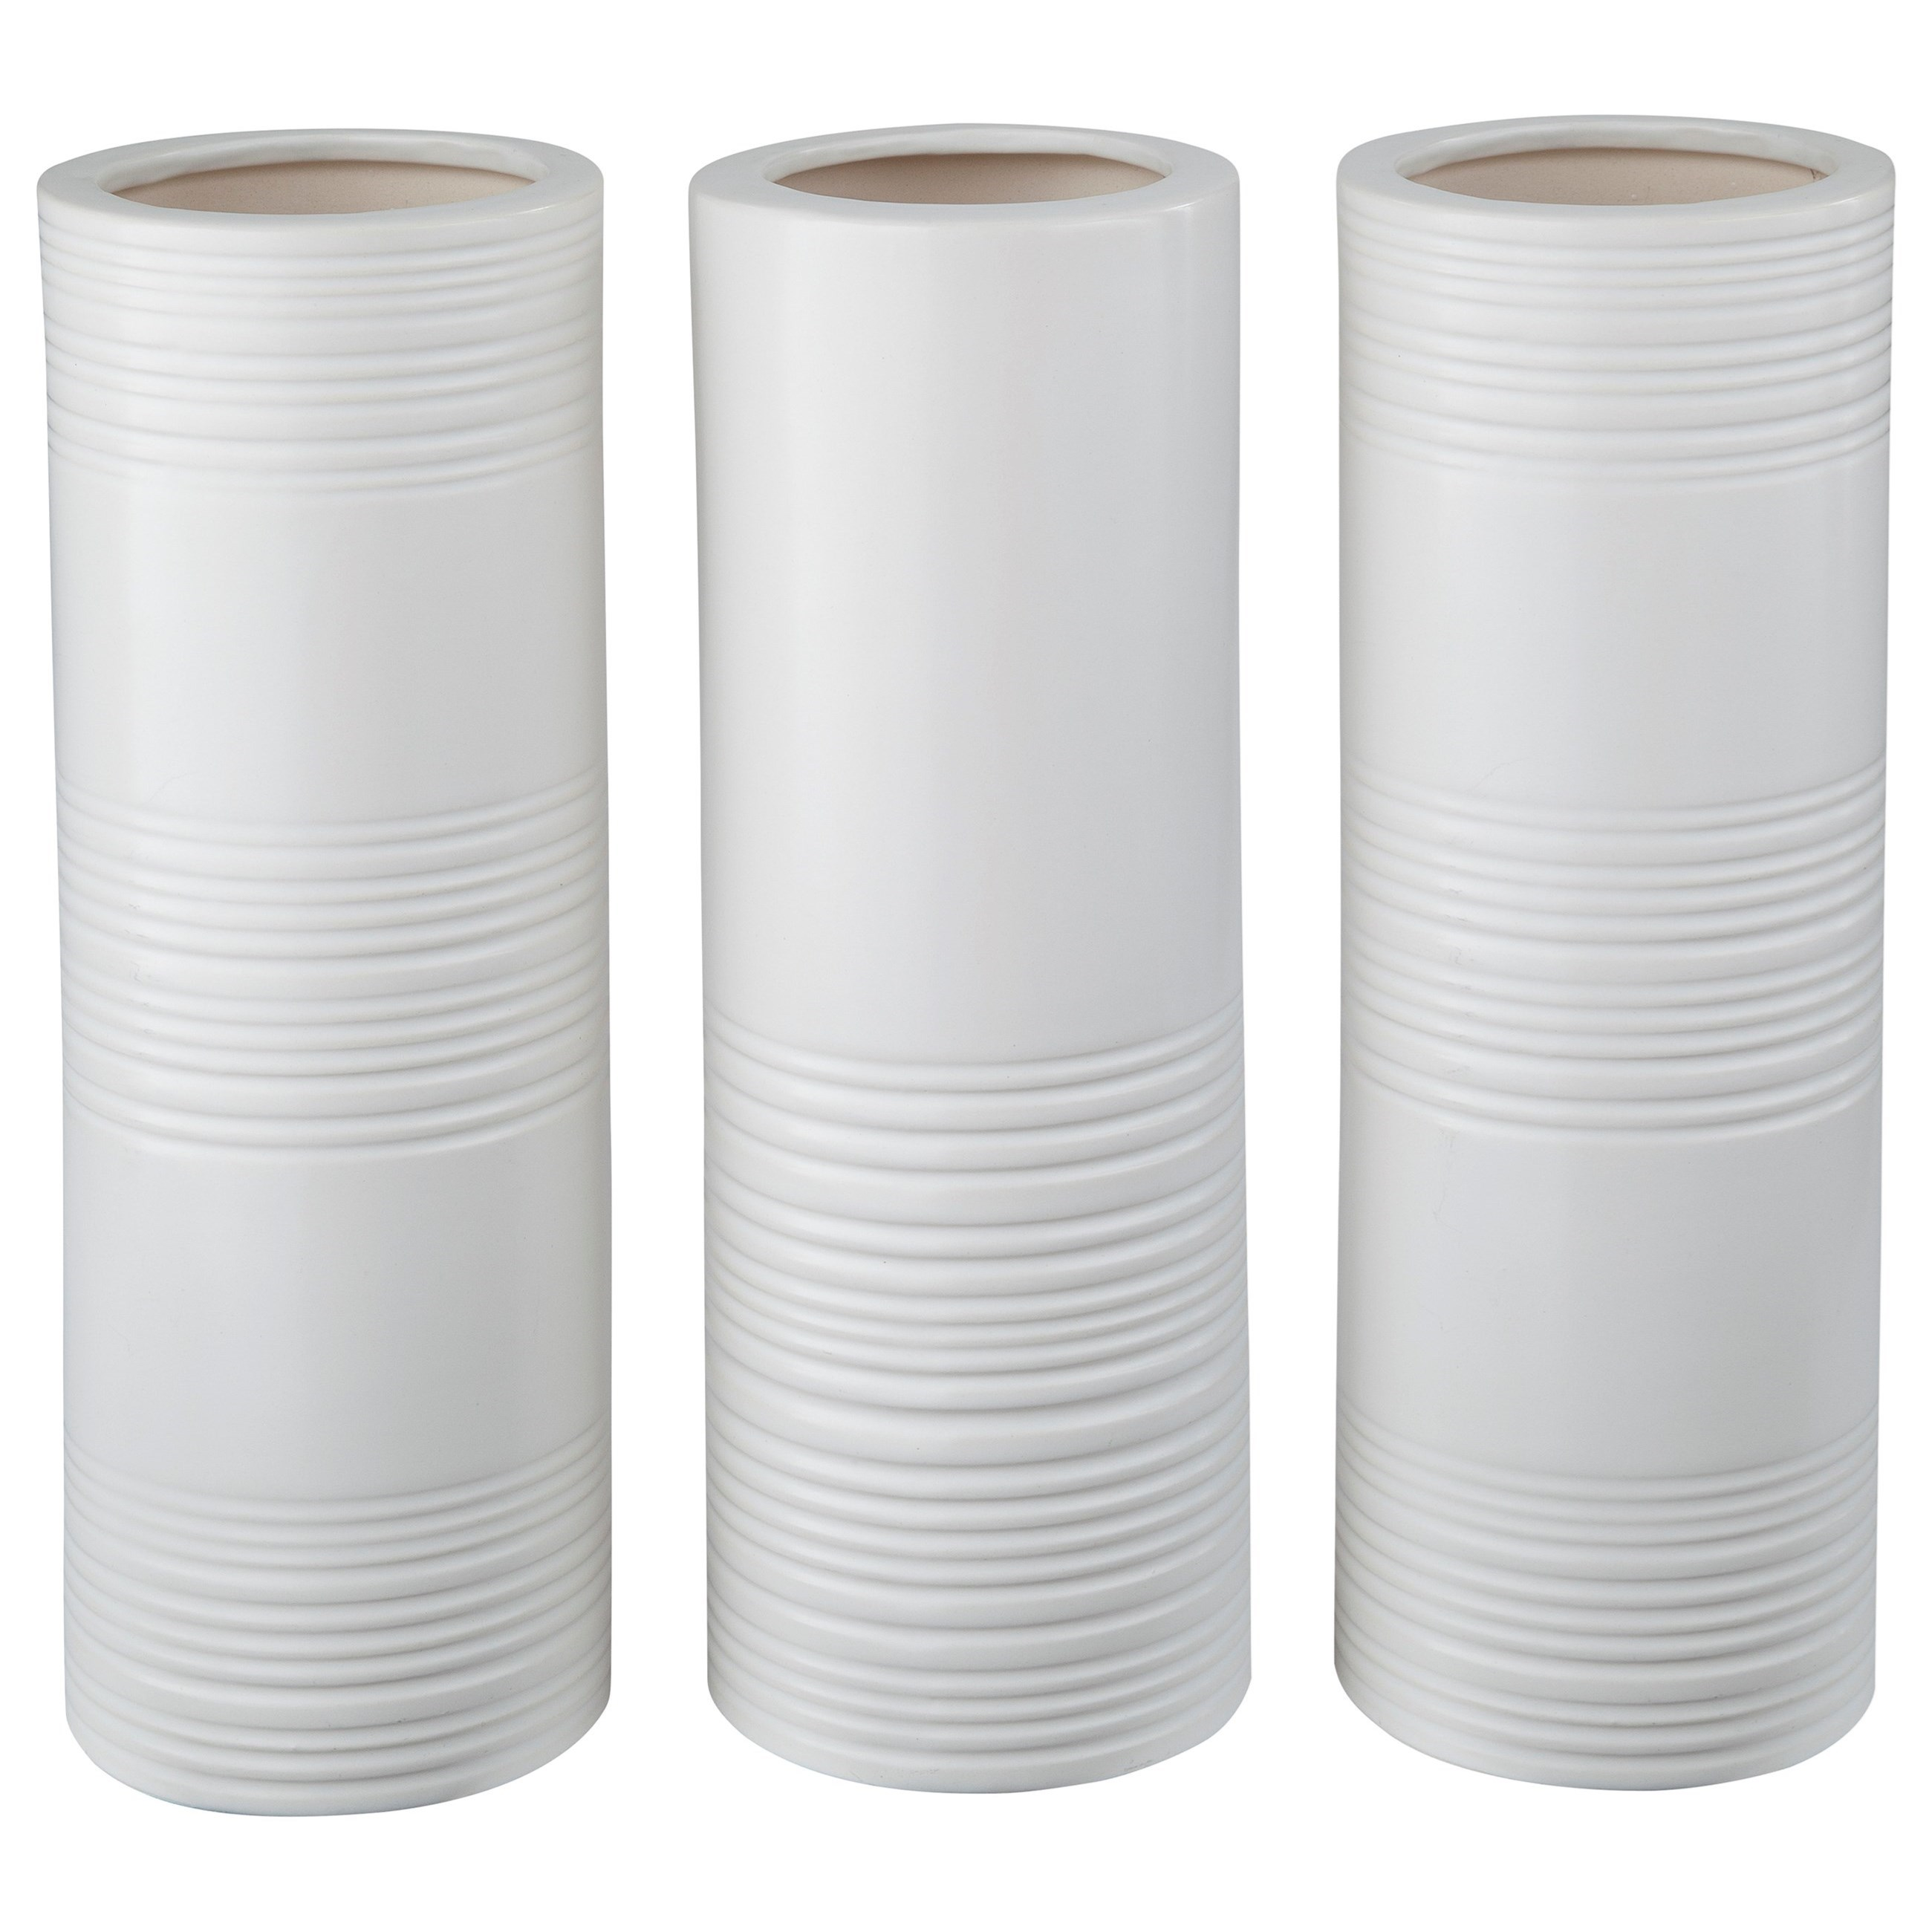 Signature Design by Ashley Accents Daemyn White Vases (Set of 3) - Item Number: A2000161V